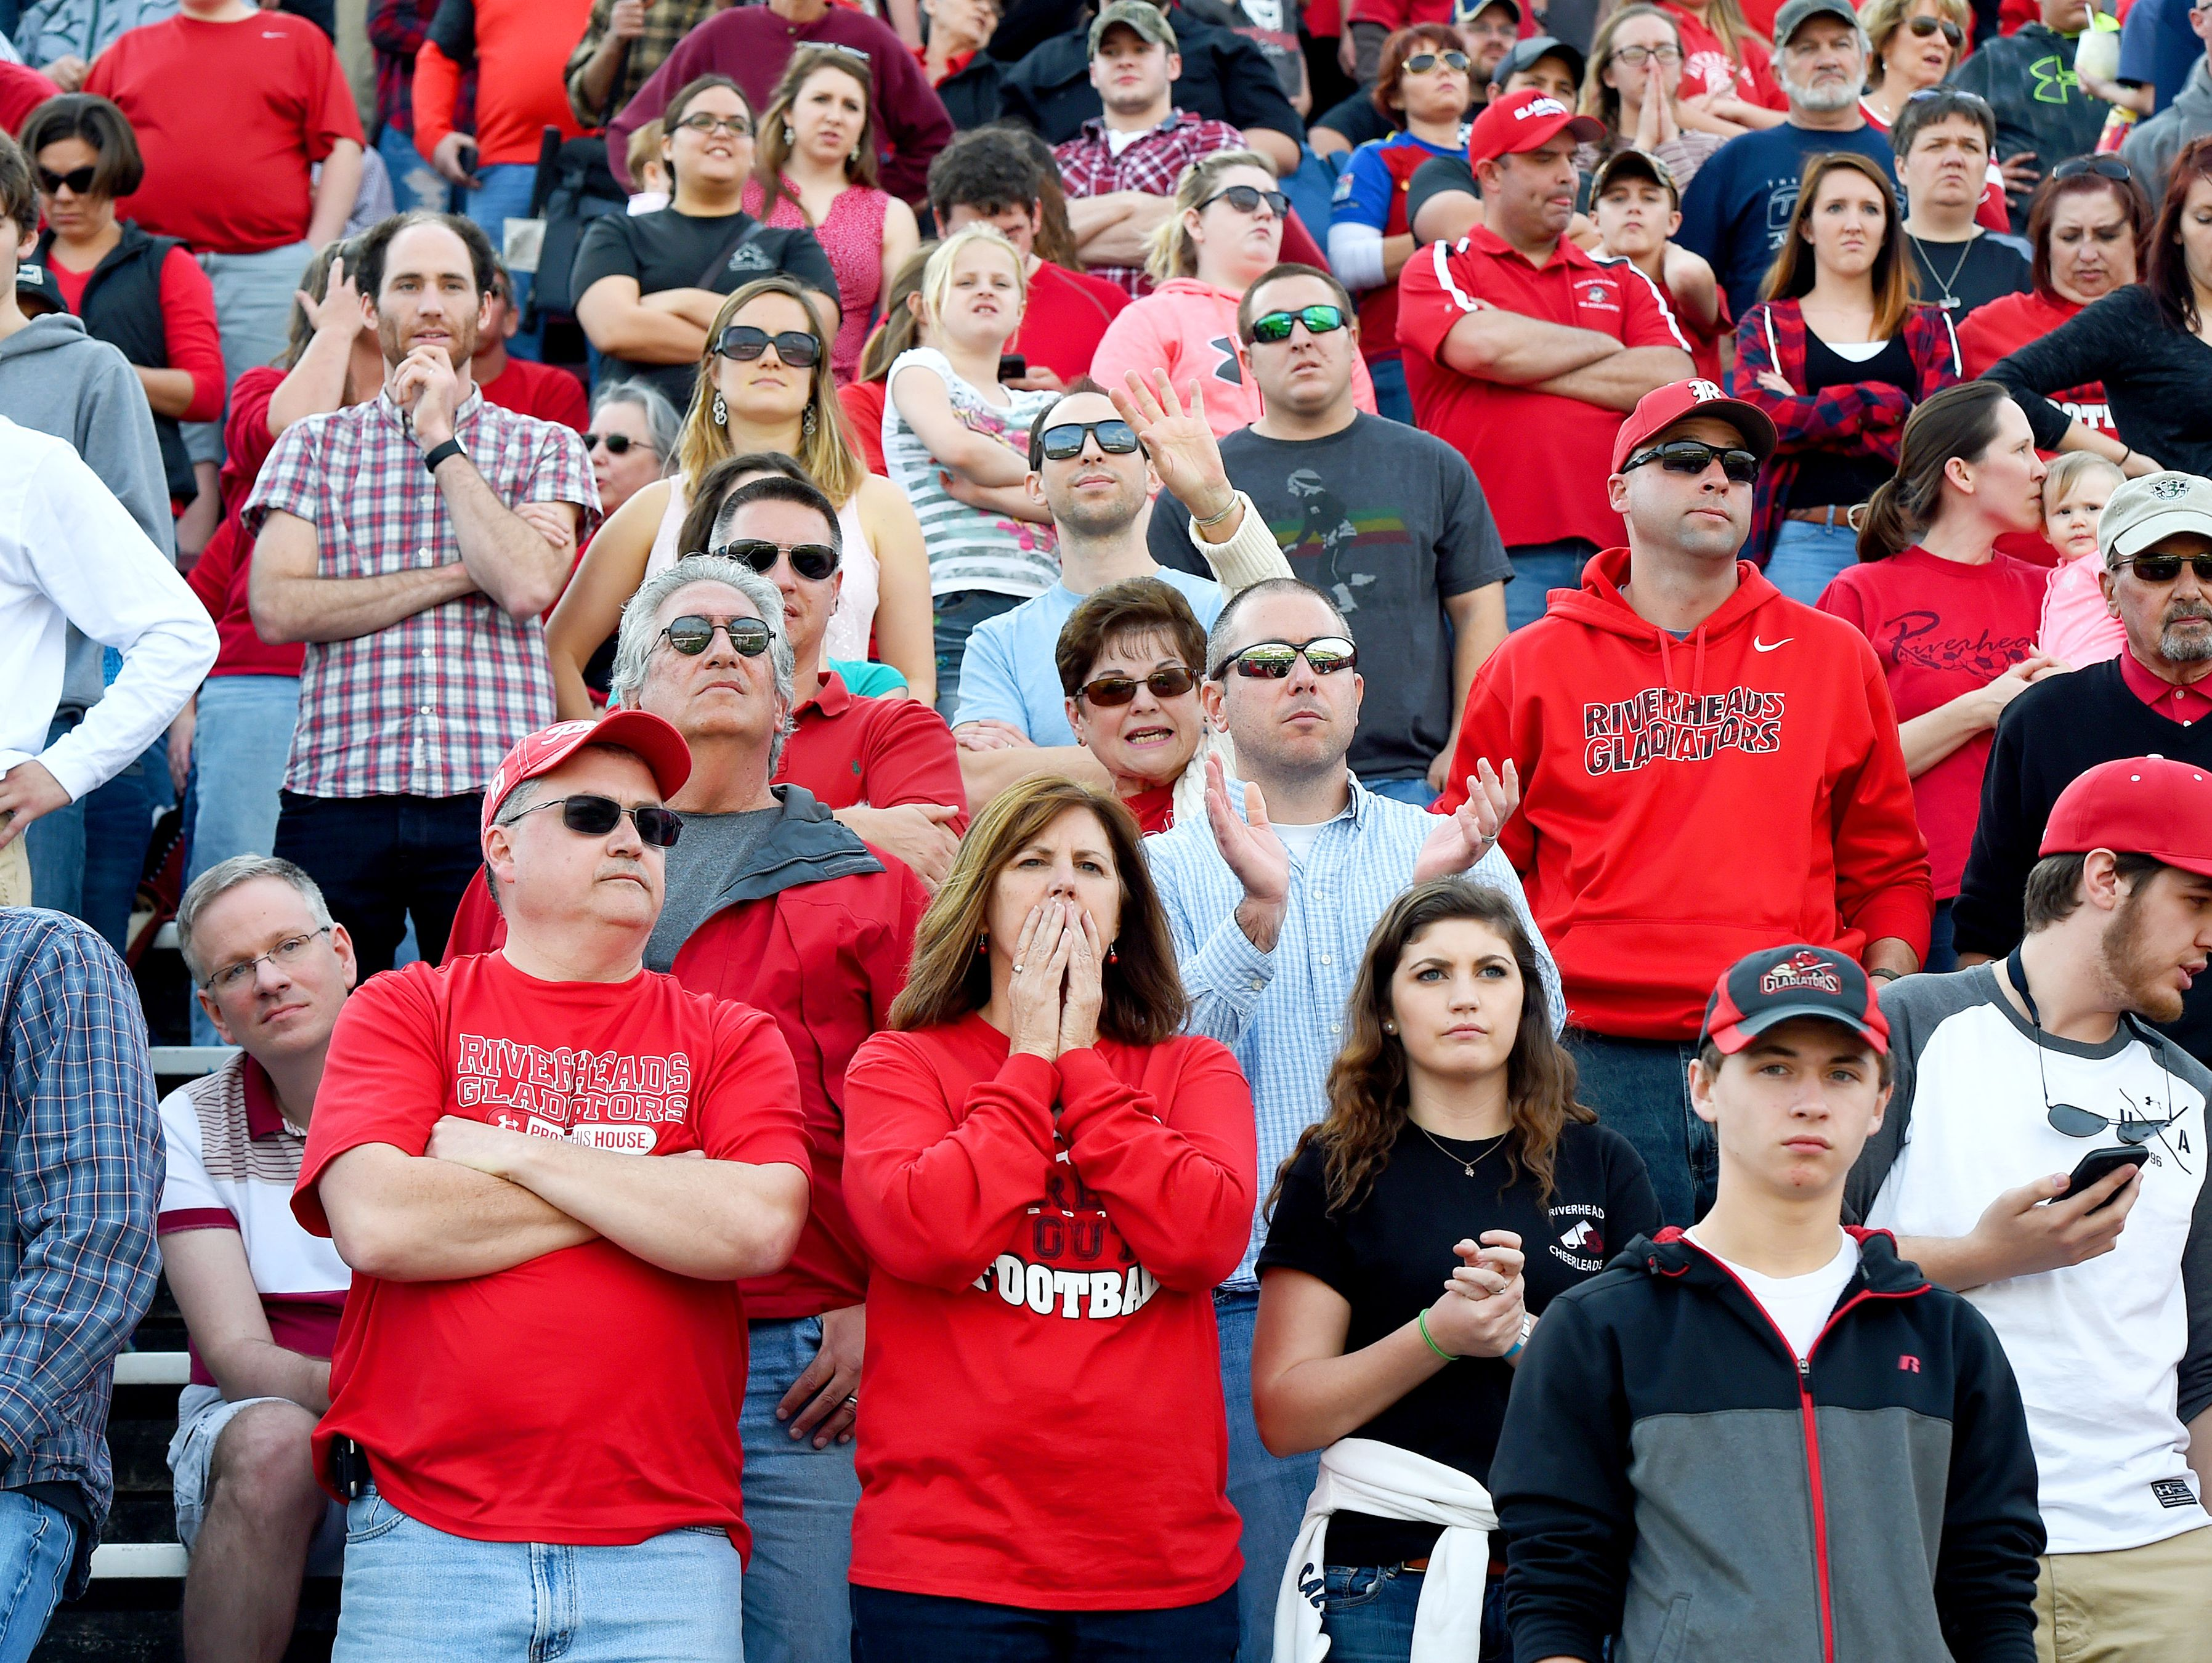 Riverheads' fans stand in relative silence as a two-point conversion fails and their team looses to Galax in the Group 1A football championship in Salem on Saturday, Dec. 12, 2015. Riverheads lost to Galax 7-6.